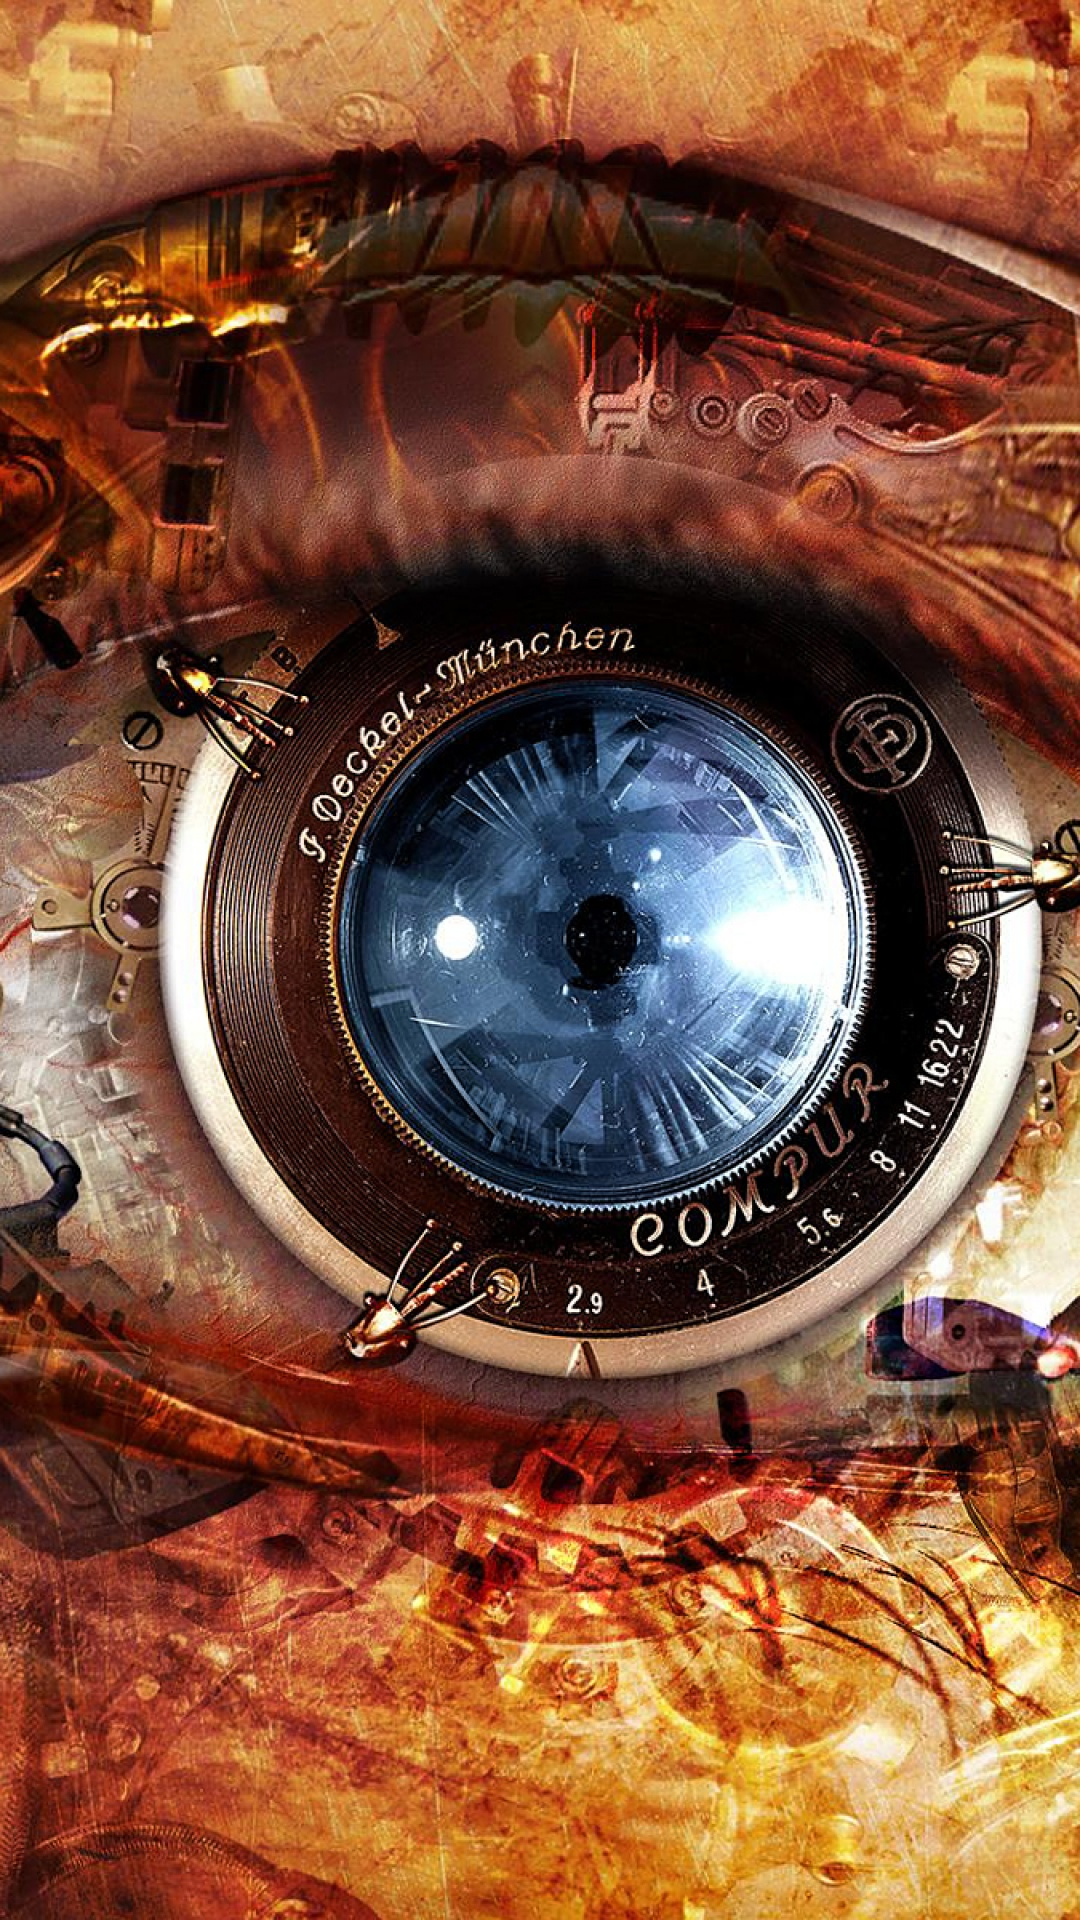 49+] iPhone Steampunk Wallpaper on ...